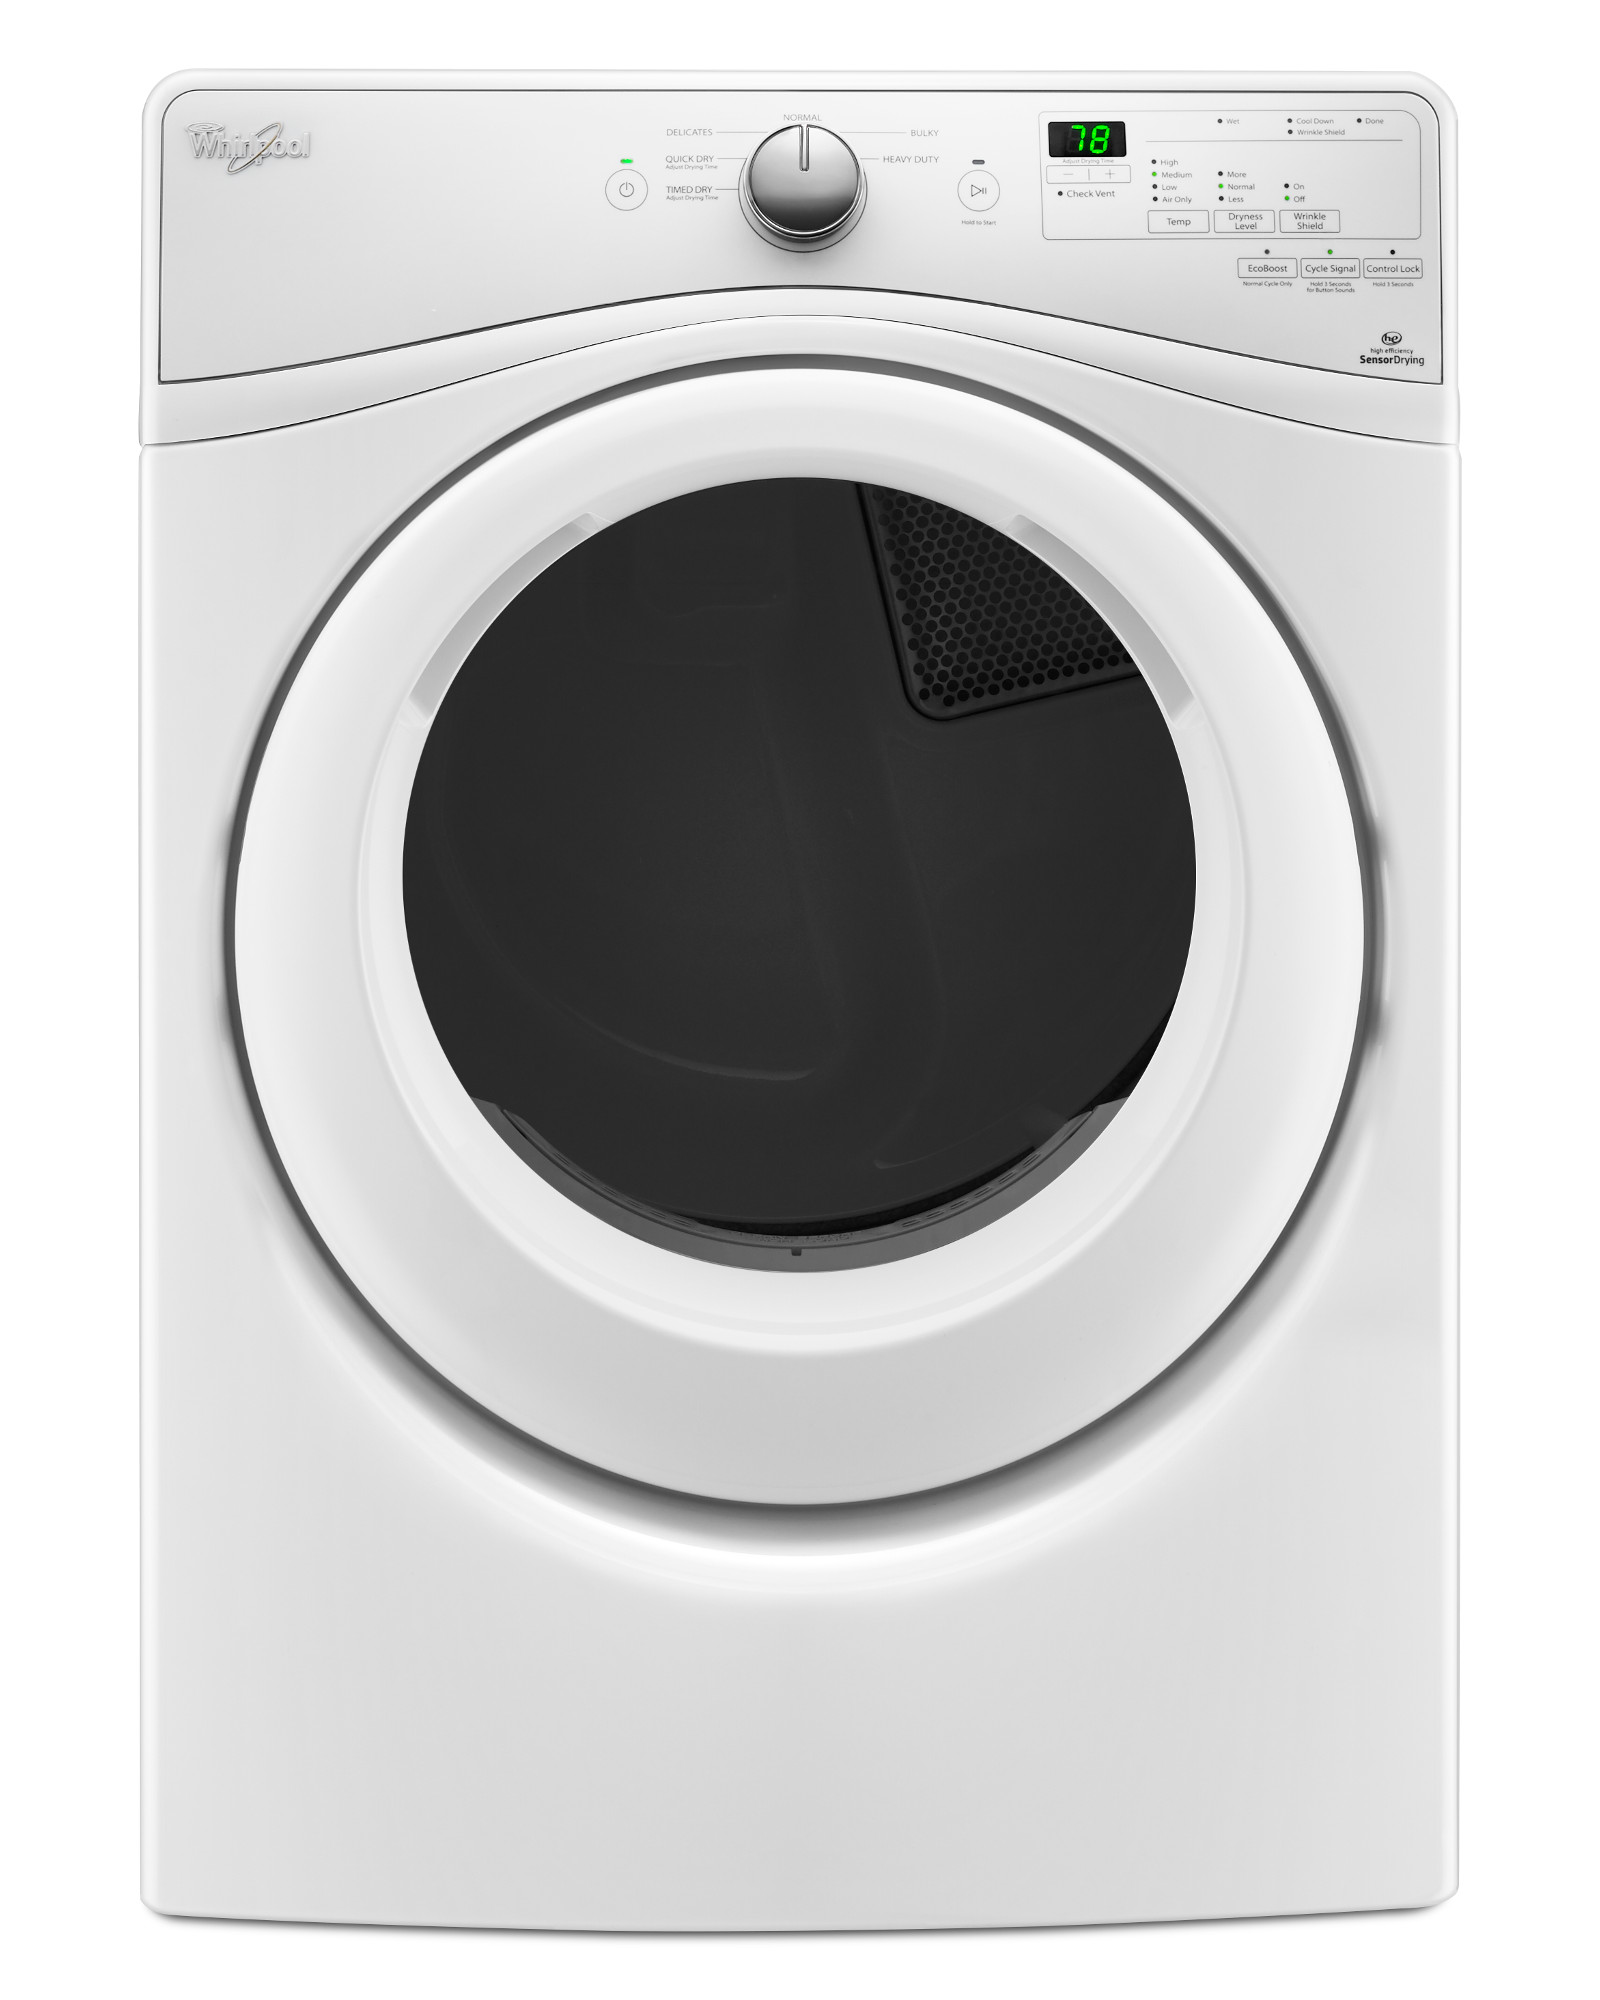 Whirlpool Wgd7590fw 7 4 Cu Ft Duet Long Vent Front Load - Whirlpool Steam Dryer